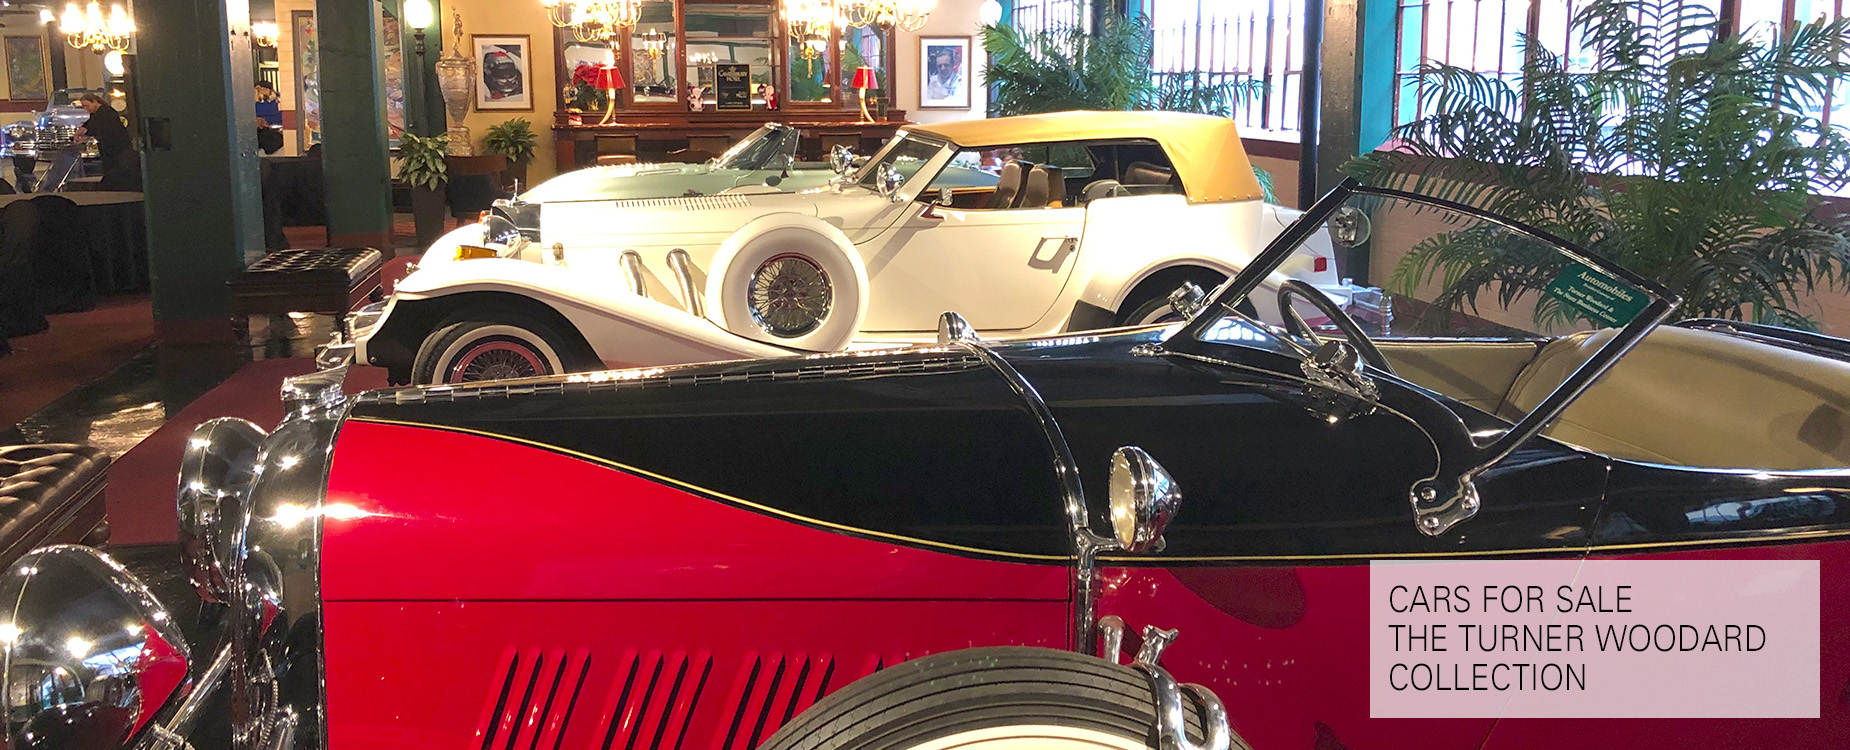 Cars For Sale - The Turner Woodard Collection